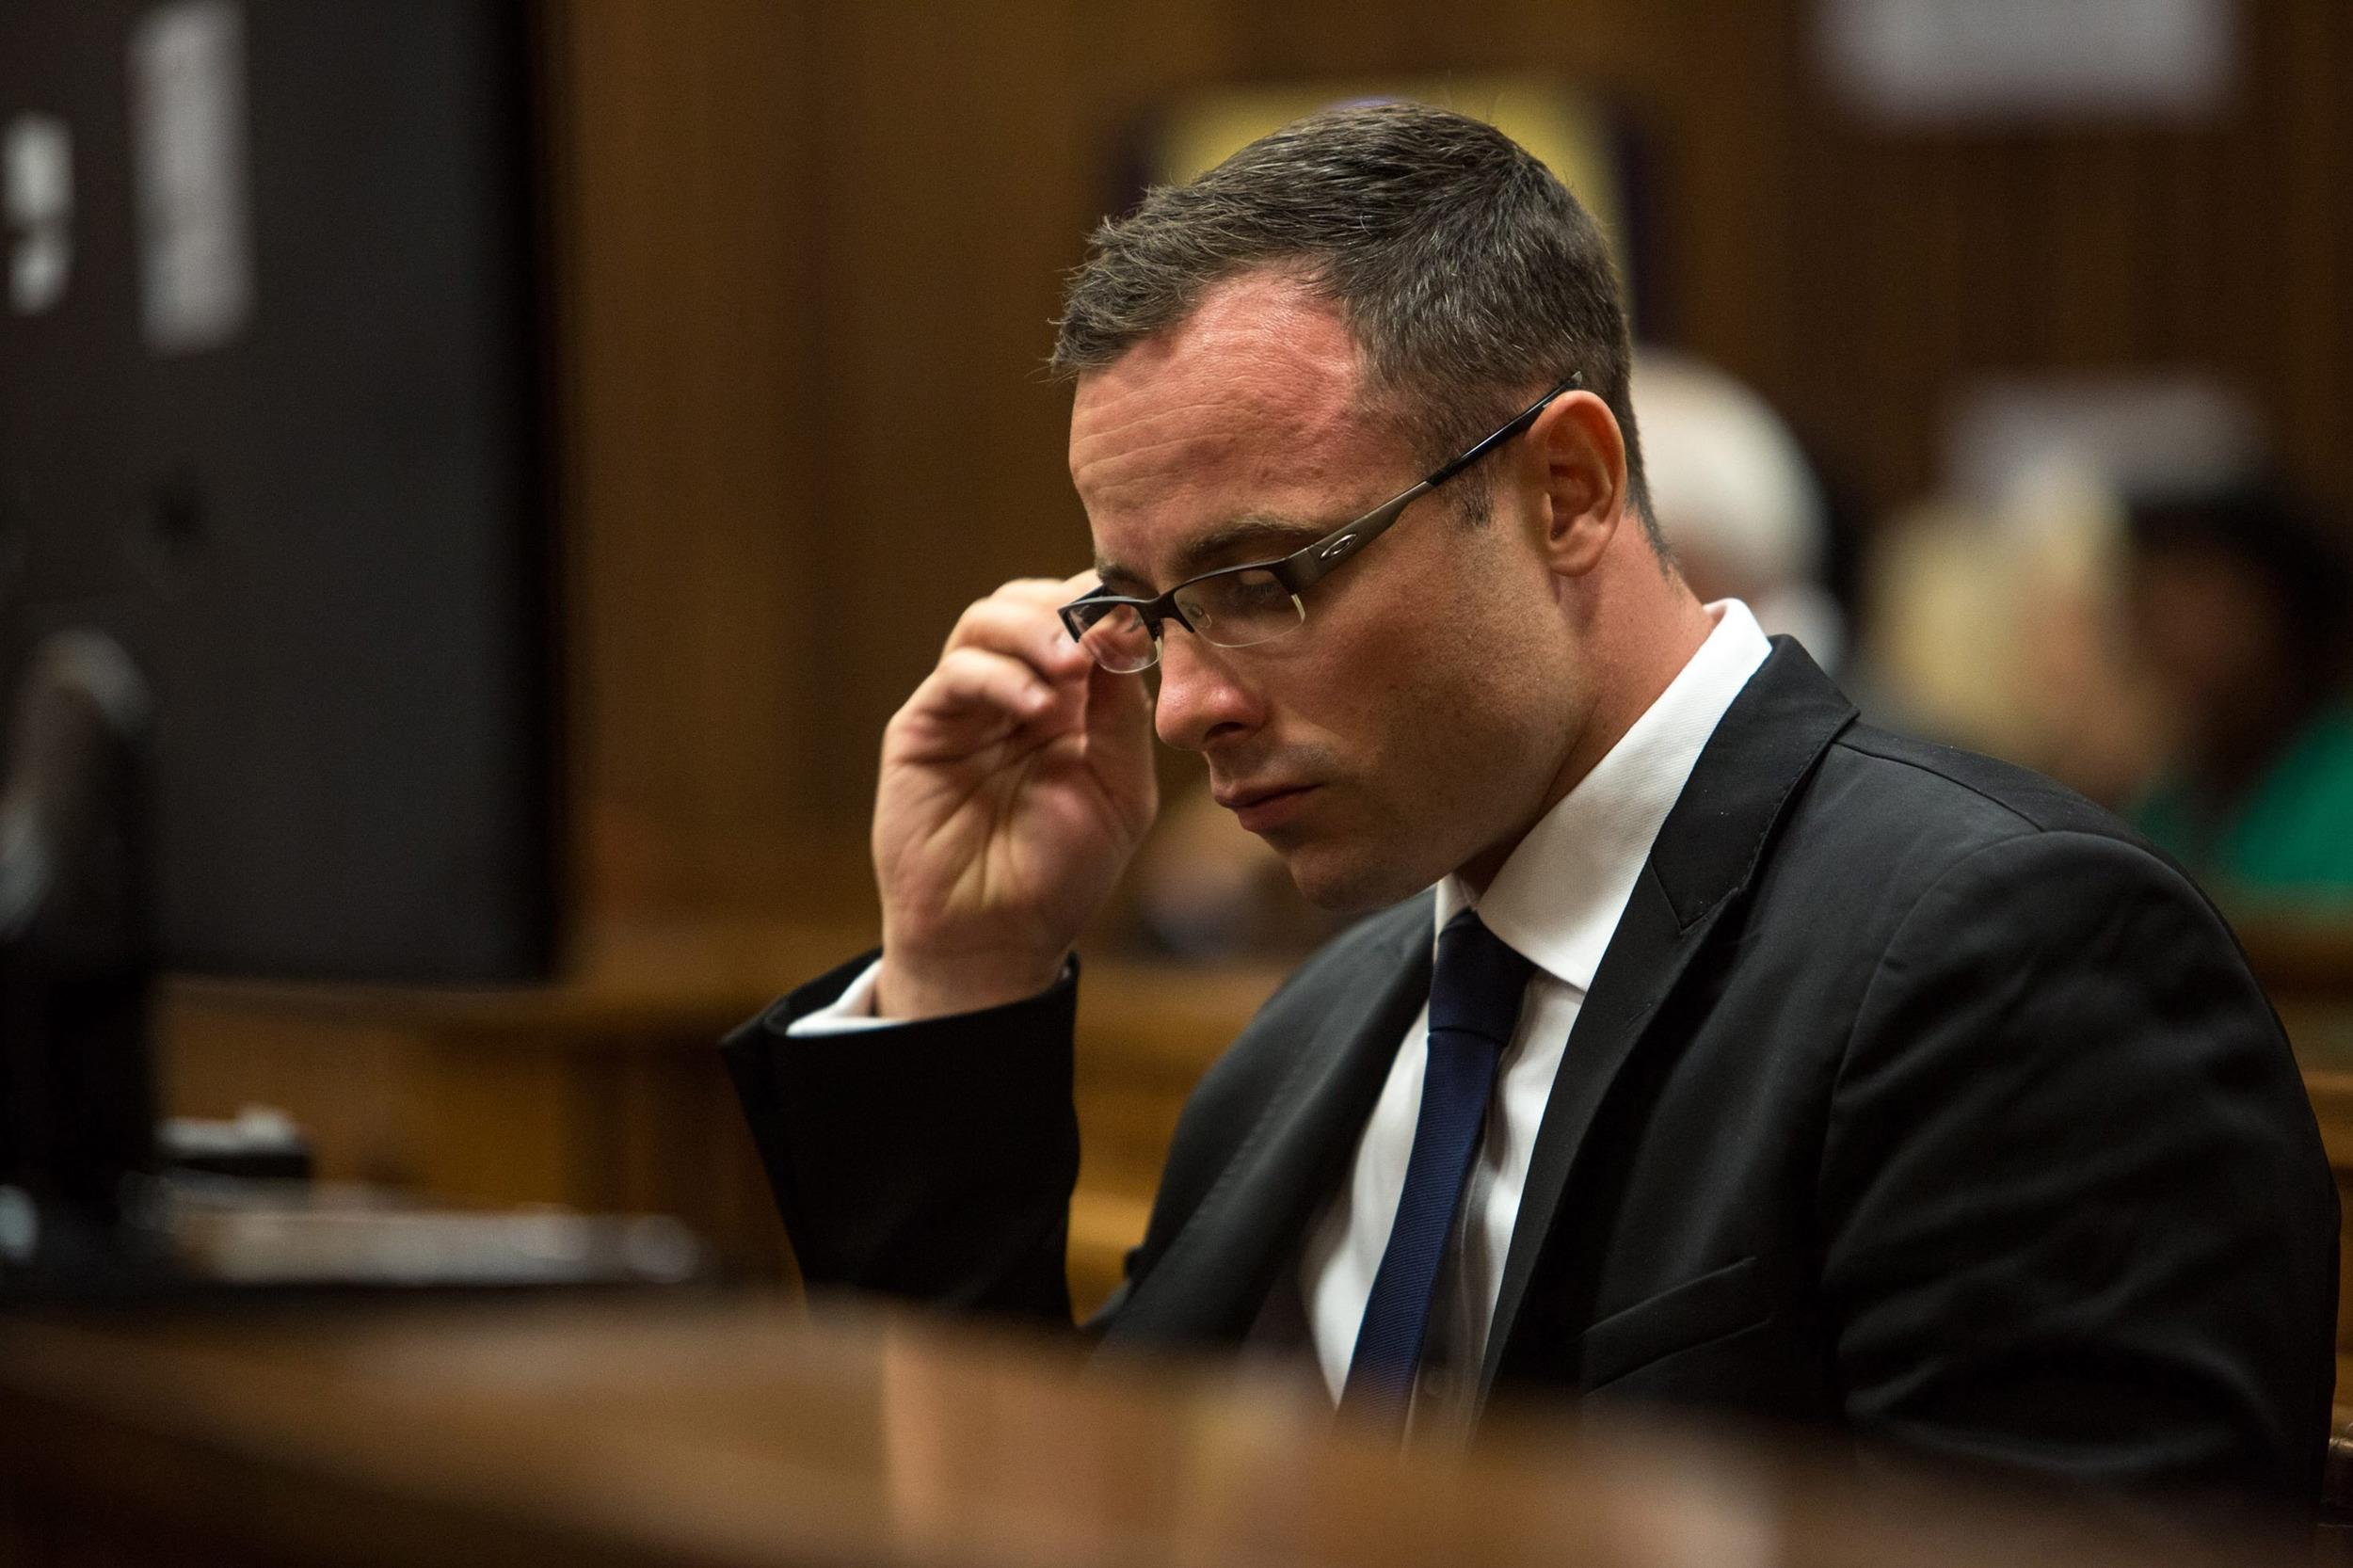 Image: Oscar Pistorius on Monday